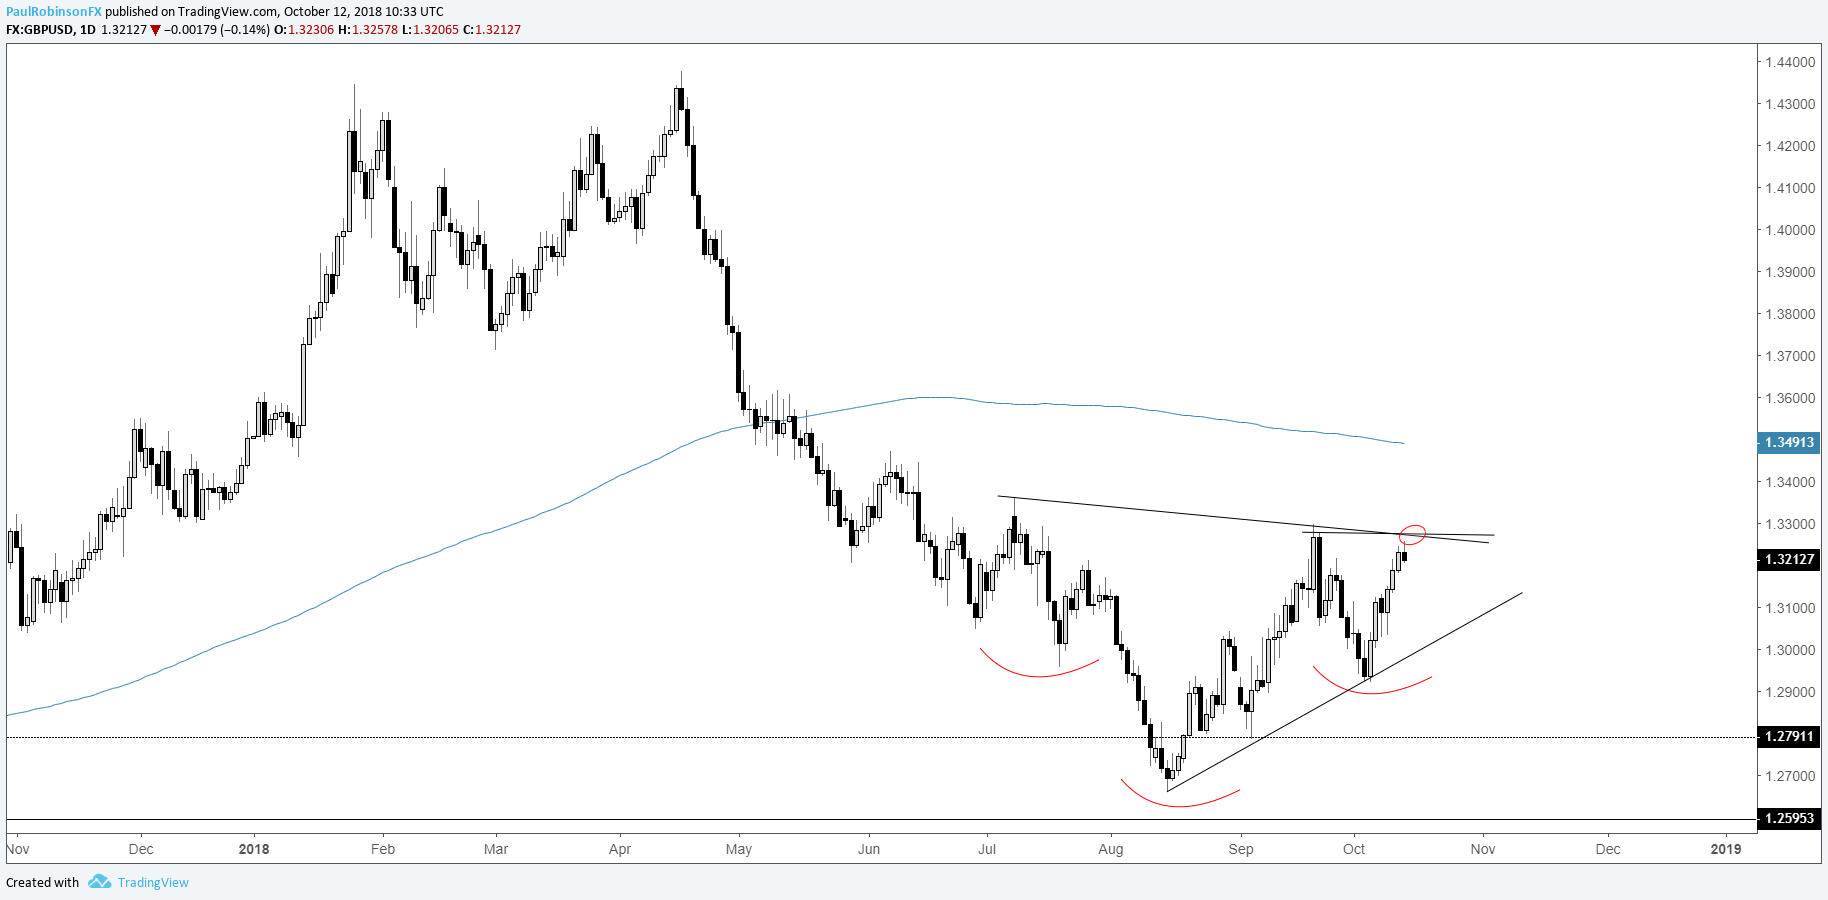 Gbp Usd Daily Chart Bottom Formation To Launch Higher